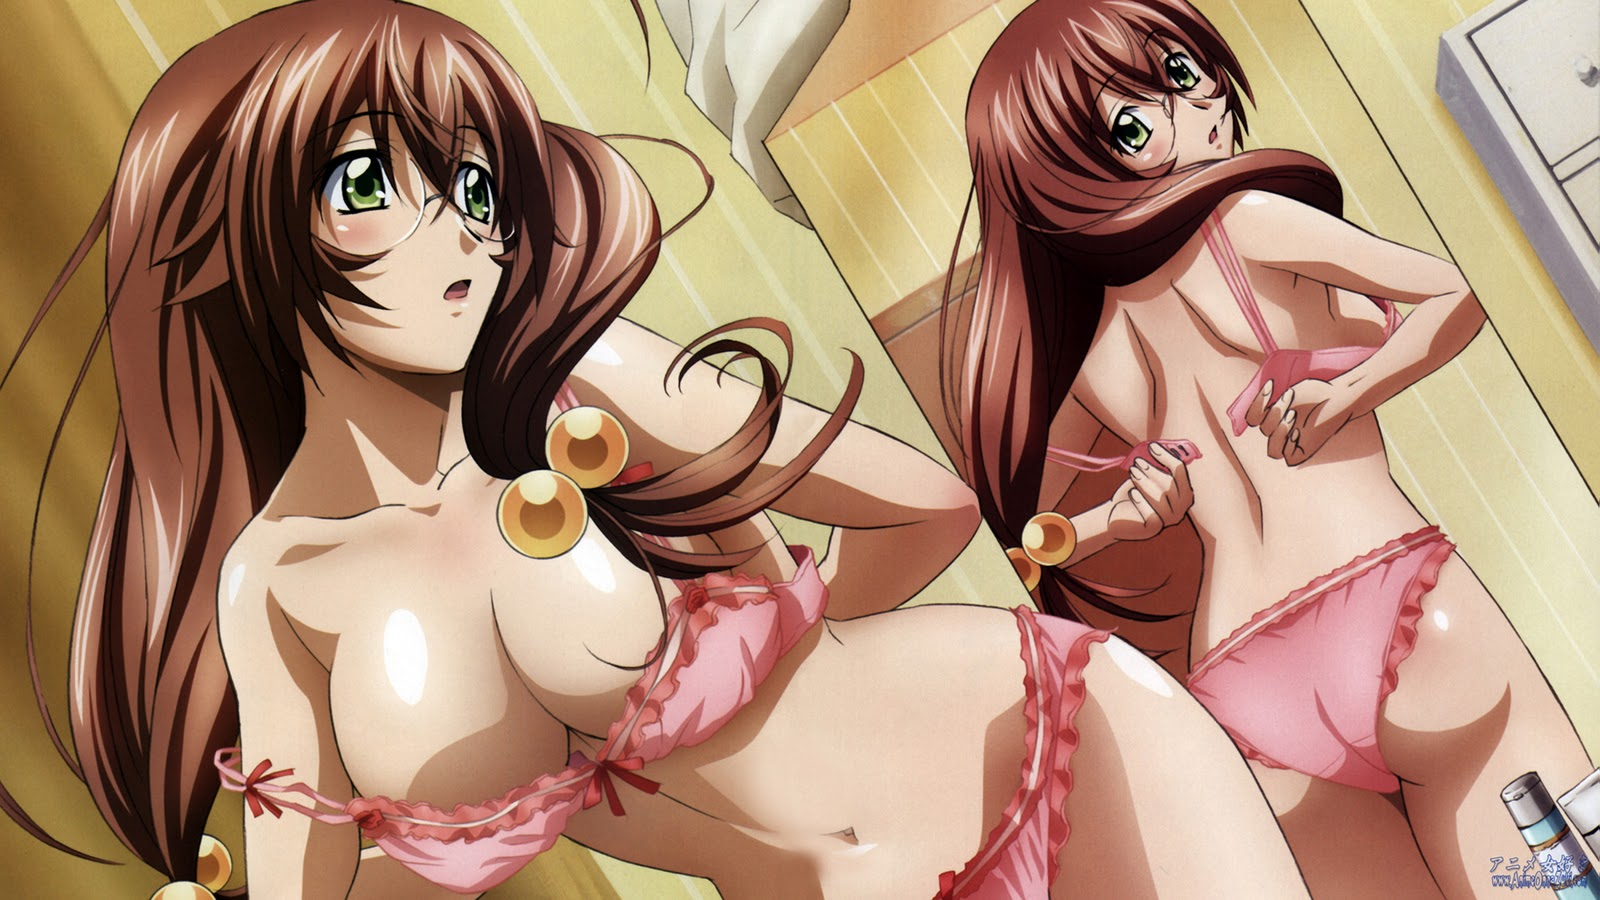 http://1.bp.blogspot.com/-MRueW66rx_s/TtwtuUYk1iI/AAAAAAAACkA/MiWaROPK4Ro/s1600/Ikki+Tousen+big+boobs+busty+battle+vixens+huge+tits+cartoon+action+ecchi+female+characters+3+bra+and+panties+mirror+shot+panty+underwear+bikini.jpg